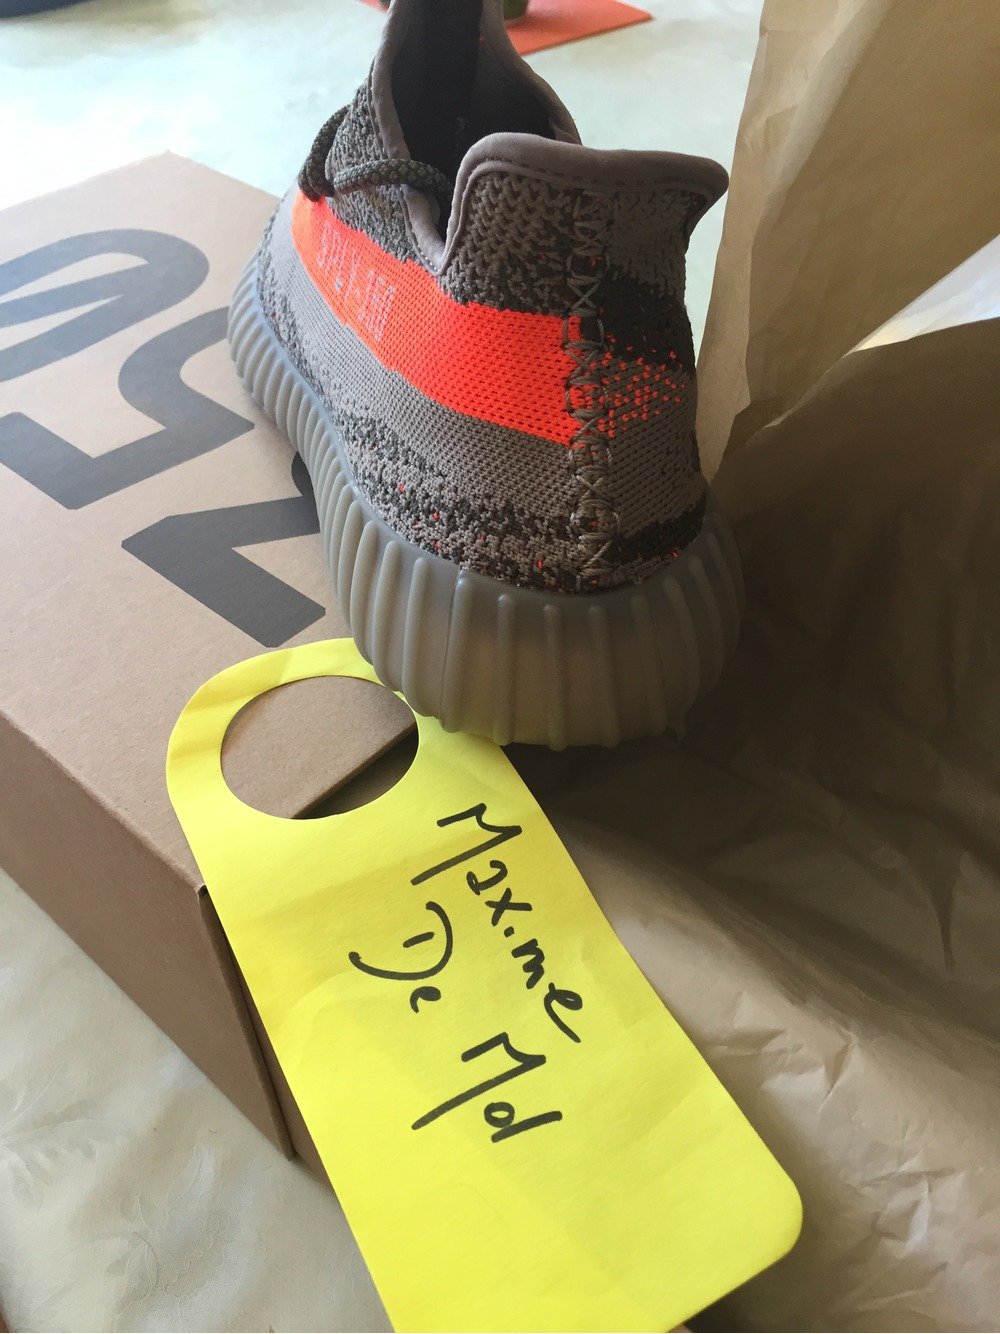 Details about Adidas Yeezy Boost 350 V2 Men's Size 11 Beluga BB1826